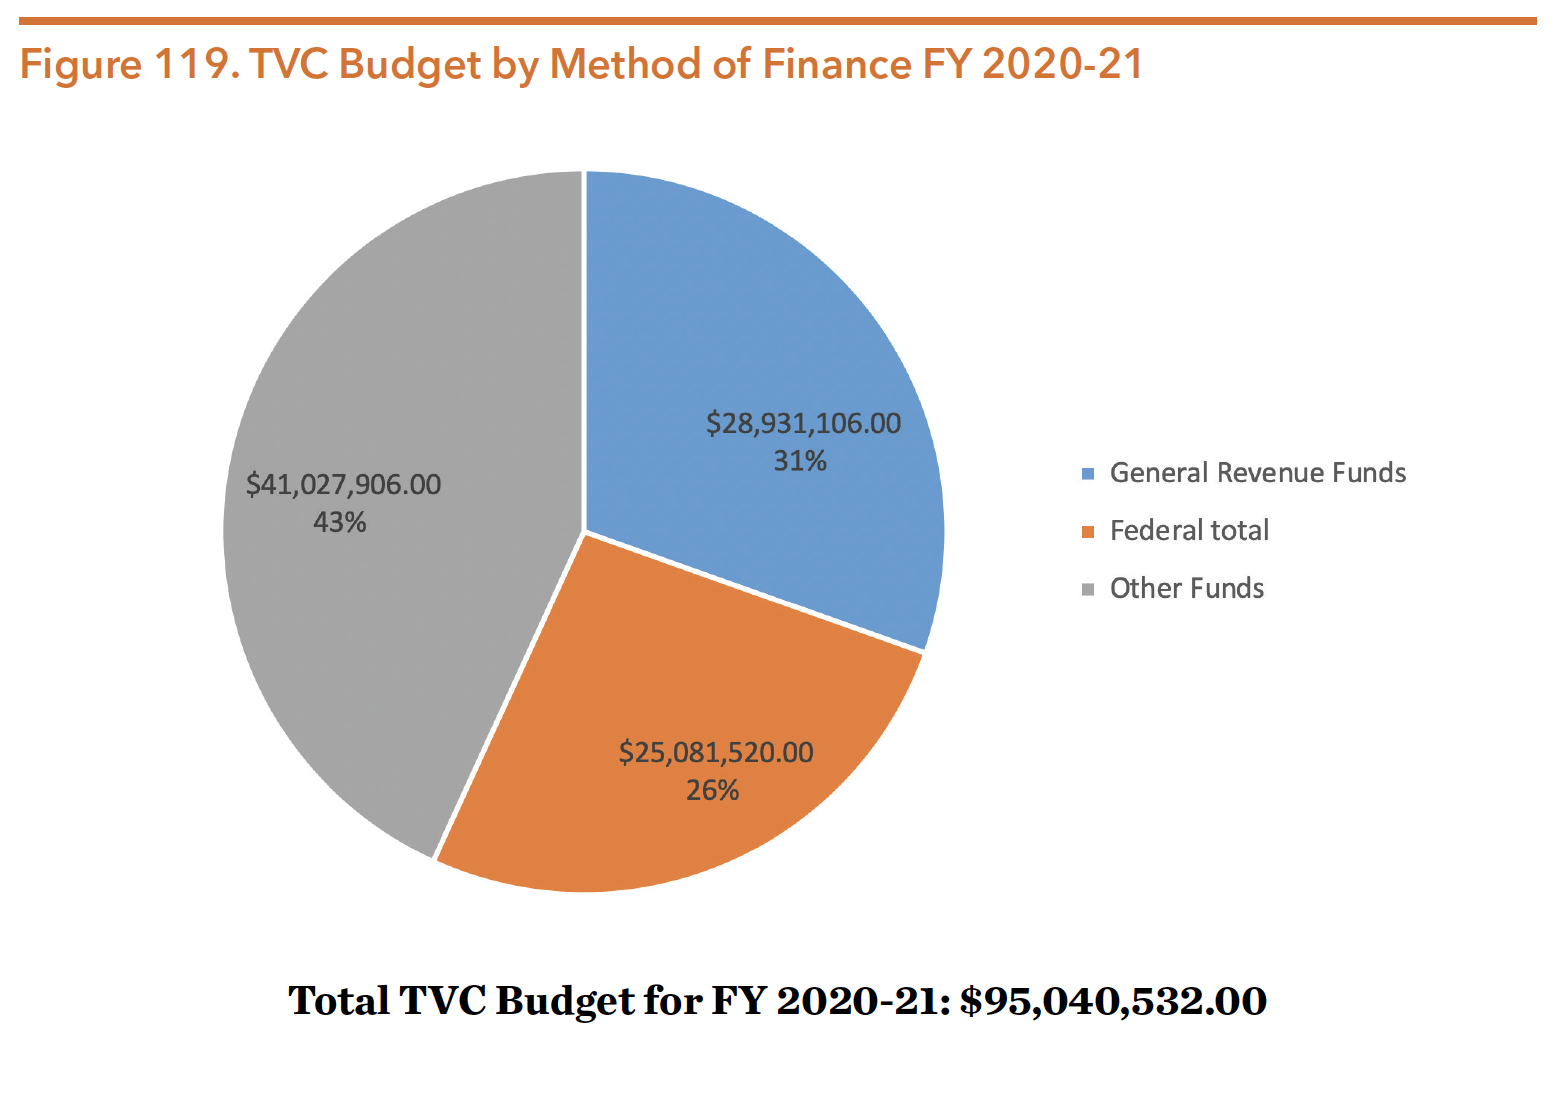 Figure 119. TVC Budget by Method of Finance FY 2020-21